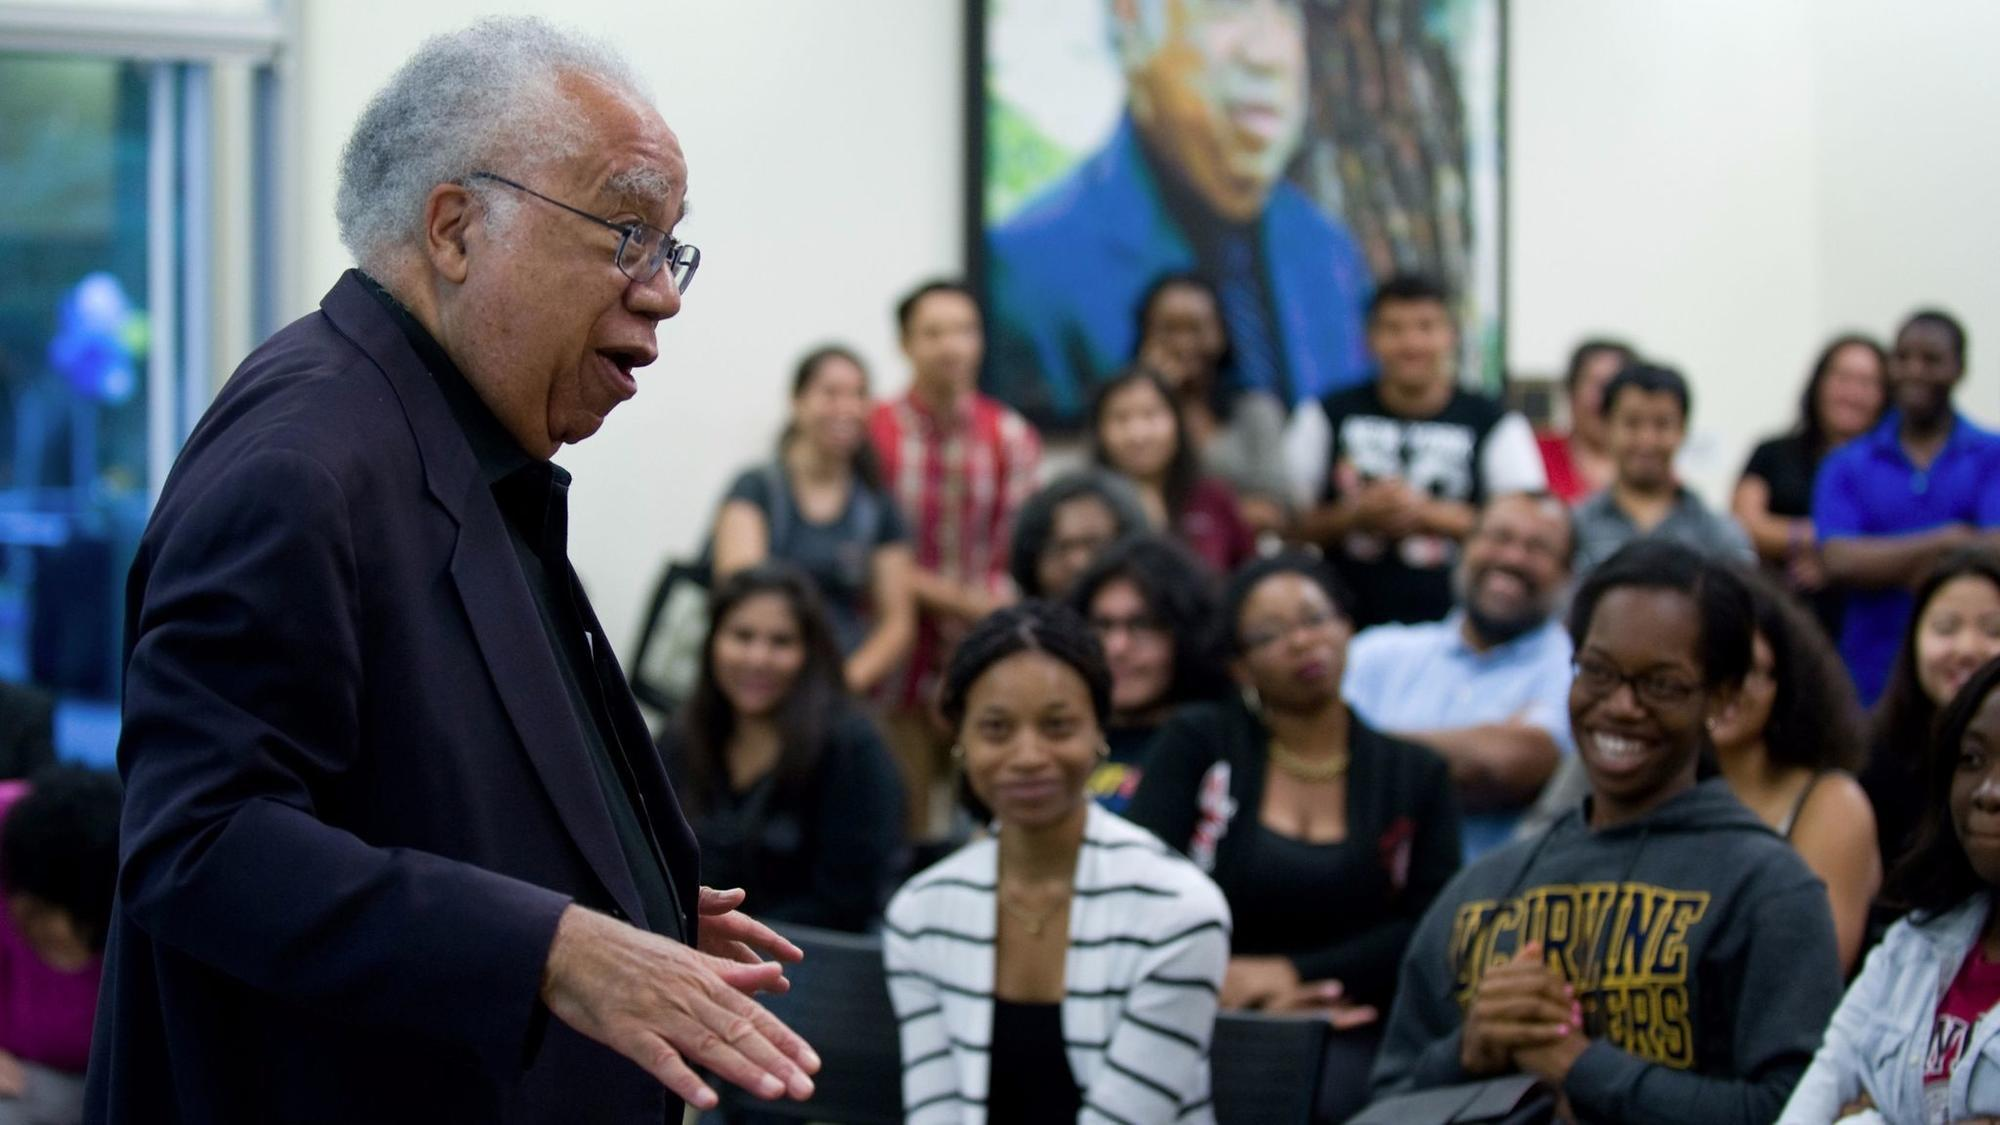 Joseph White, pioneering black psychologist who mentored students at UC Irvine, dies at 84